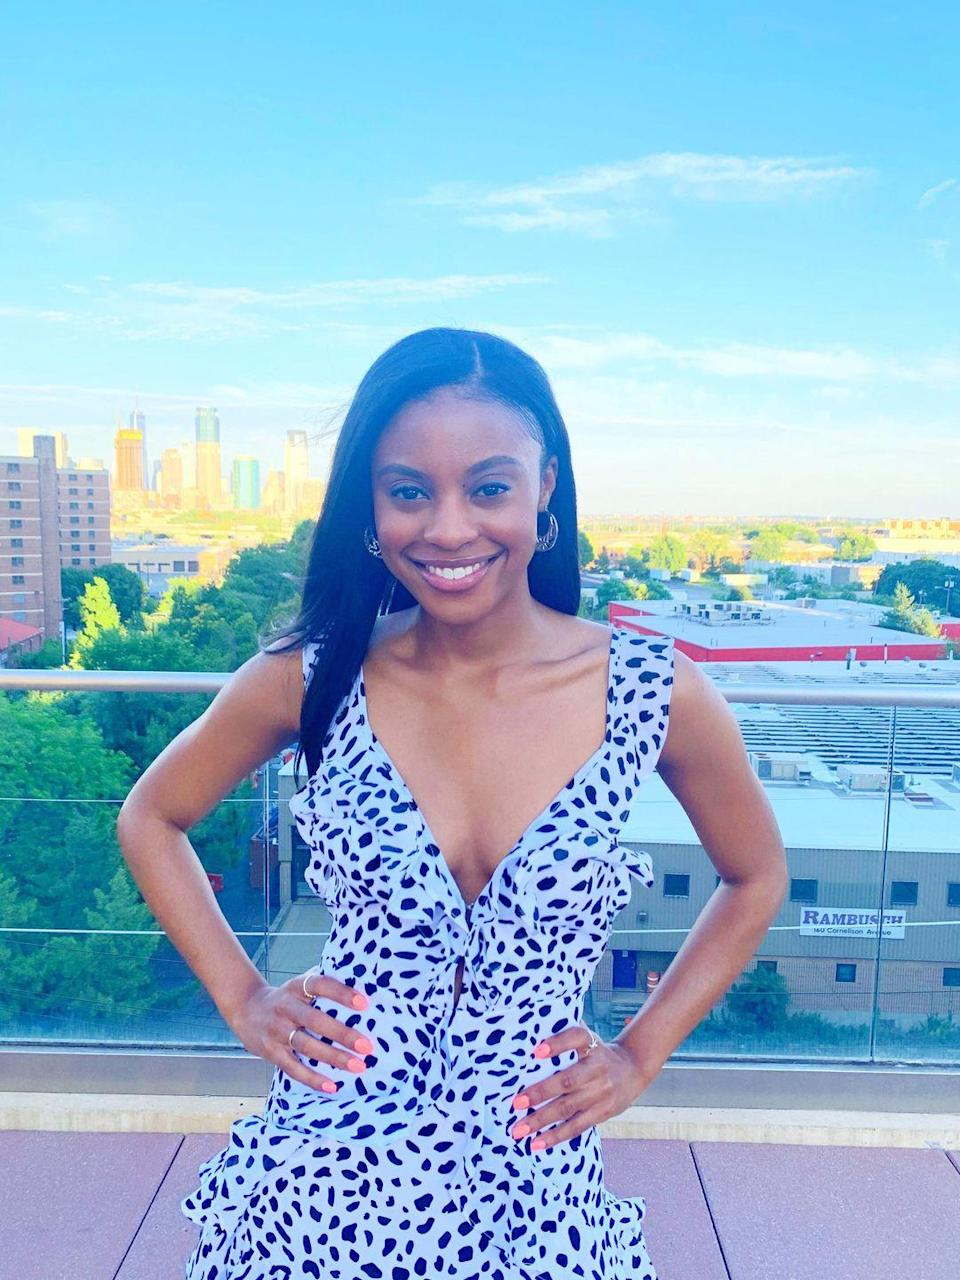 """<p>Age: 27</p><p>Hometown: Virginia Beach, VA</p><p>Instagram: <a href=""""https://www.instagram.com/kristin_bria/?hl=en"""" rel=""""nofollow noopener"""" target=""""_blank"""" data-ylk=""""slk:@kristin_bria"""" class=""""link rapid-noclick-resp"""">@kristin_bria</a></p><p>ABC Bio Excerpt: """"Kristin is a very smart and successful attorney who says that while she dreams of finding her perfect match, her busy career and professional ambitions haven't left her with too much spare time to date. Kristin is truly wifey material—not only is she beautiful, but she is fiercely loyal, intelligent and credits her unmatched work ethic to her incredible mother who raised her. Kristin says she is definitely the party starter and needs a man who won't be intimidated by her natural magnetism.""""</p>"""